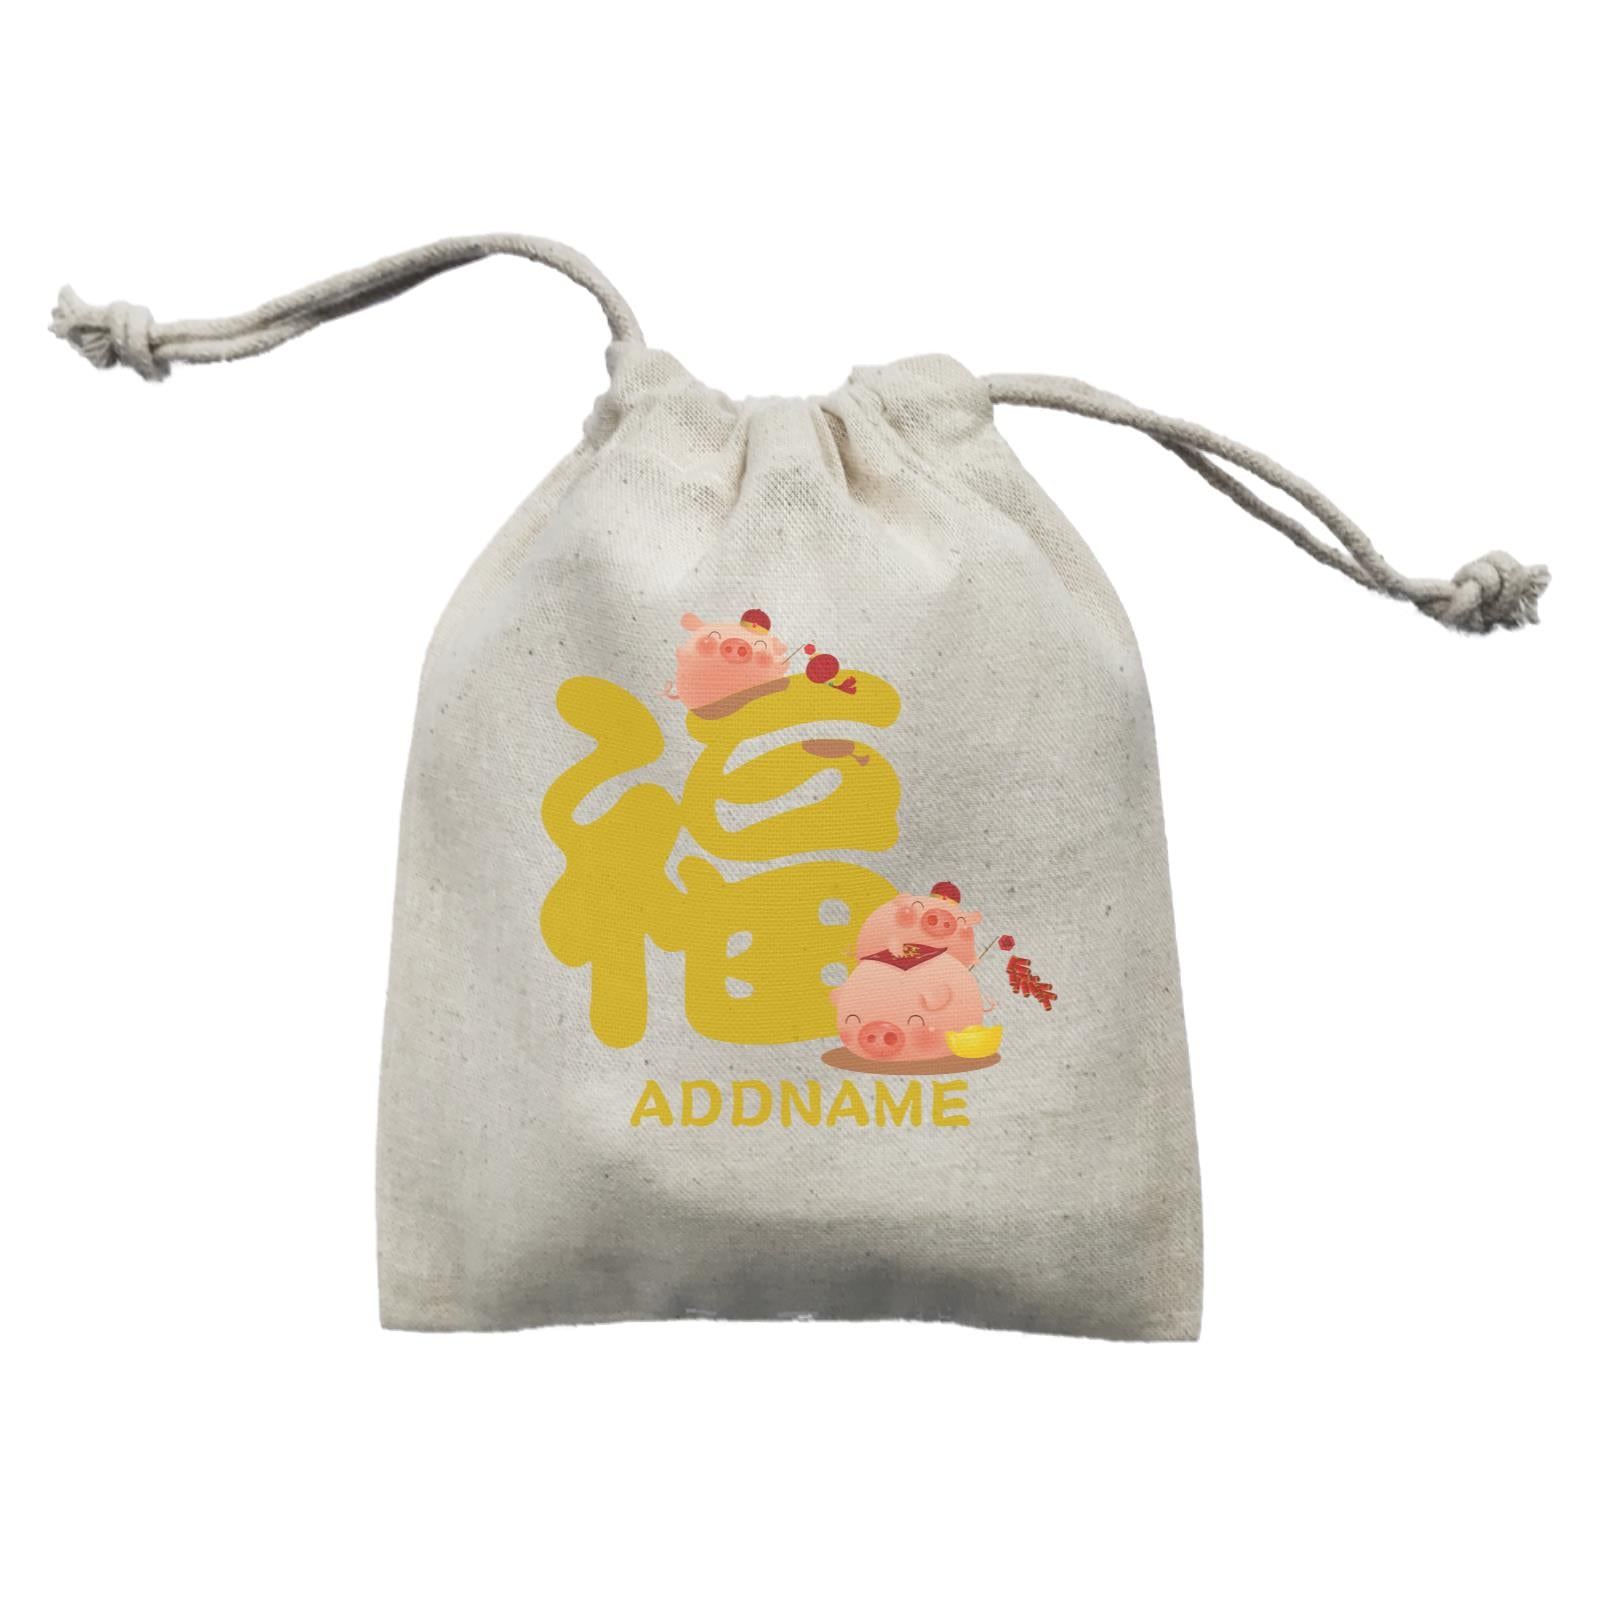 Chinese New Year Pig Group With Happiness Emblem Addname Mini Accessories Mini Pouch